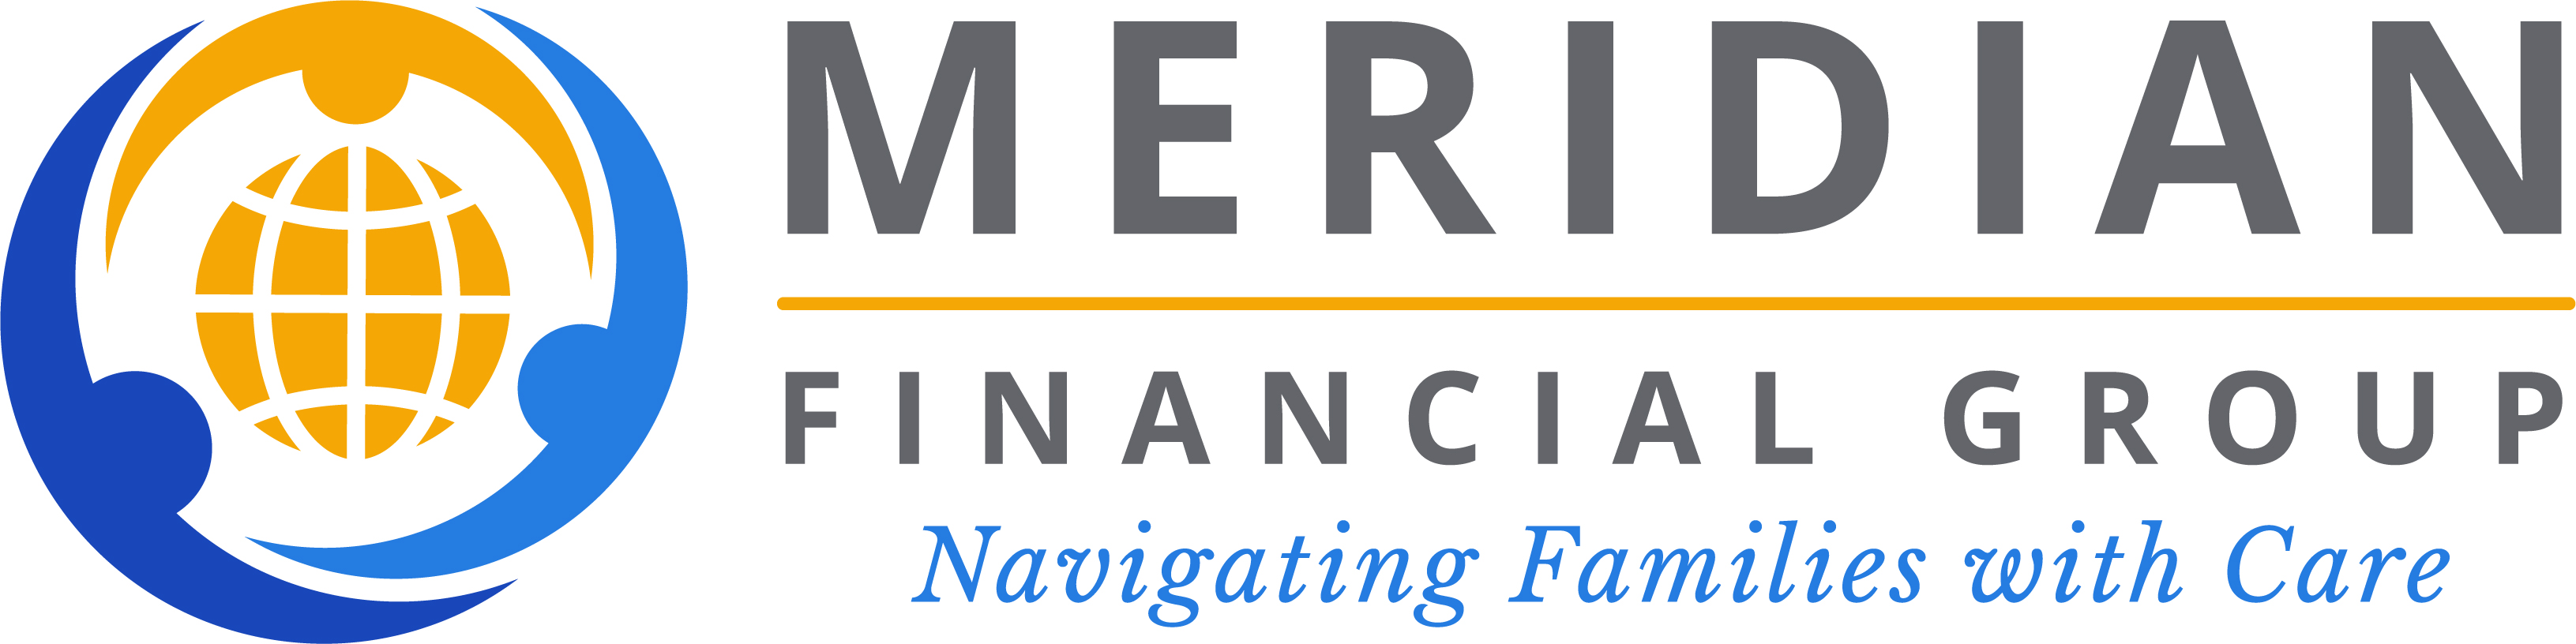 Meridian Financial Group logo